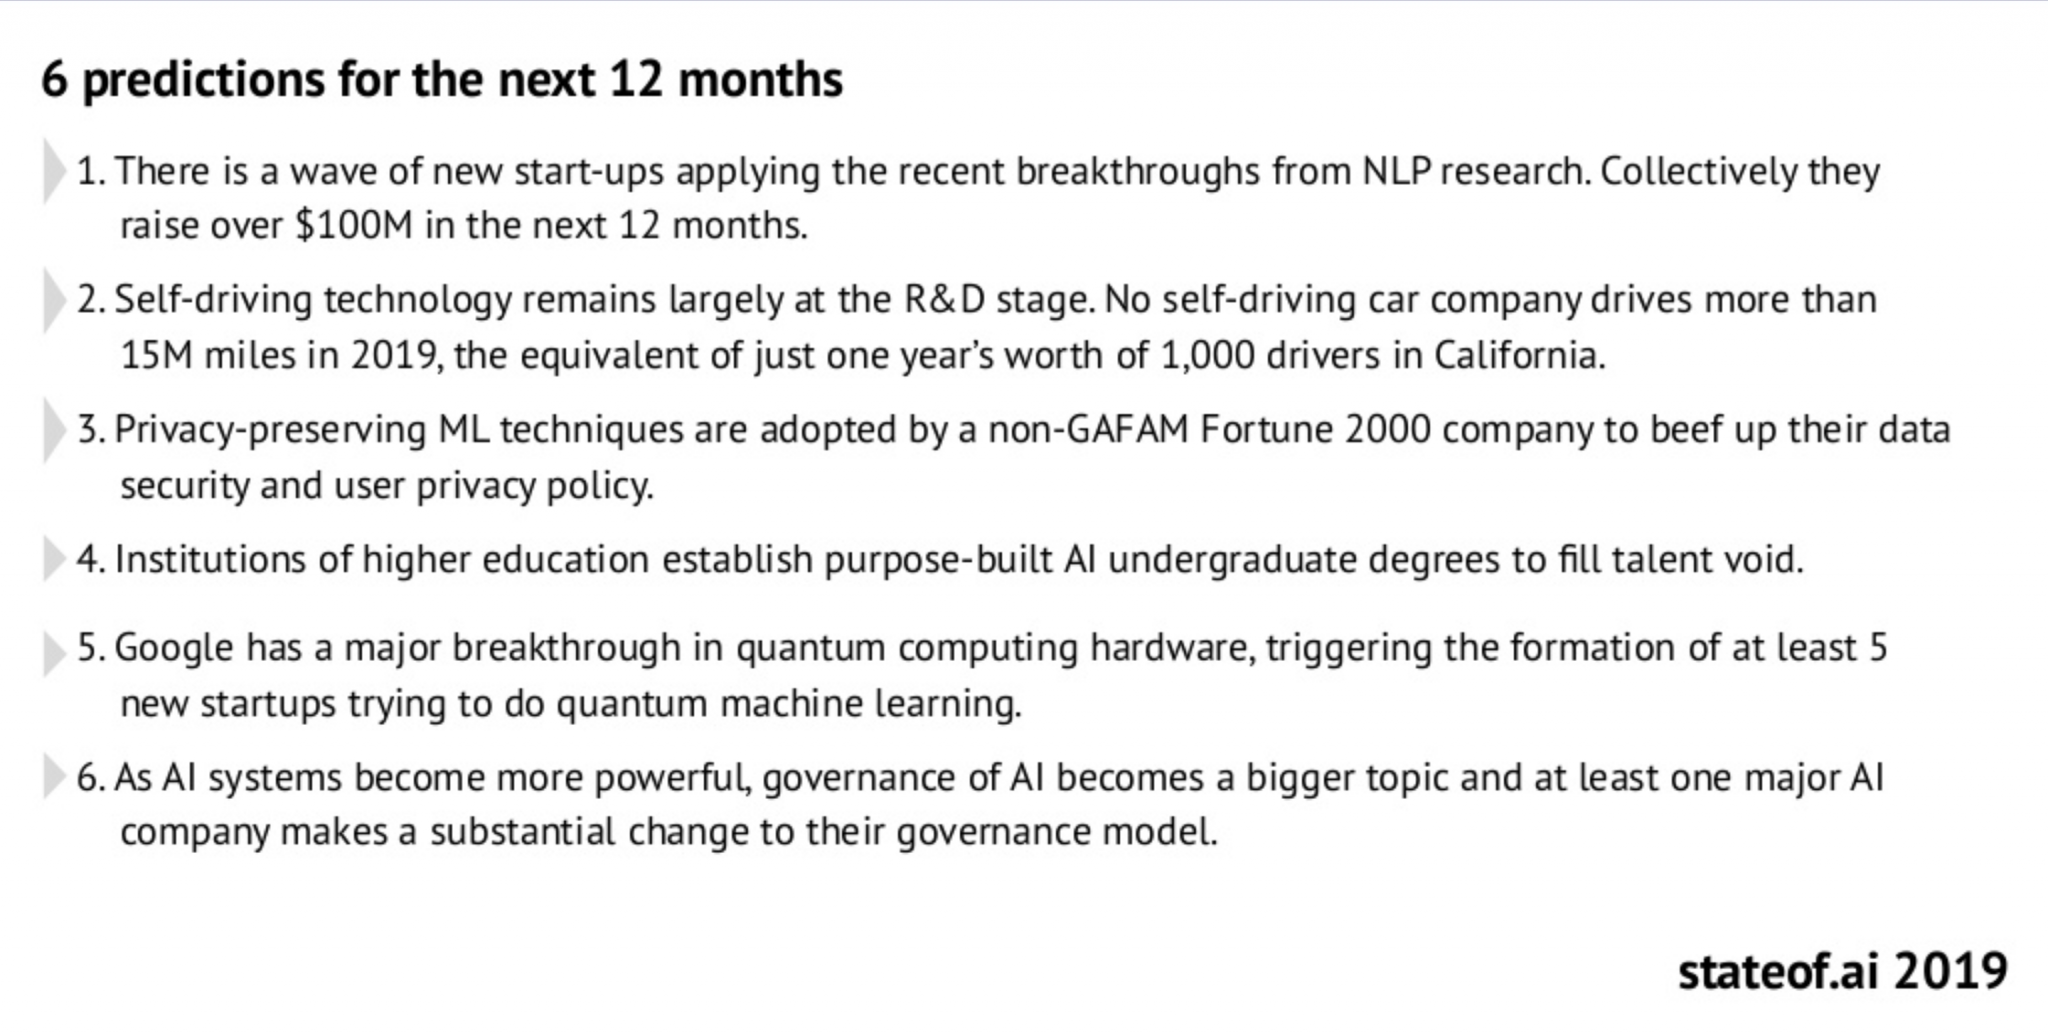 Image showing a list of 6 AI predictions for 2020